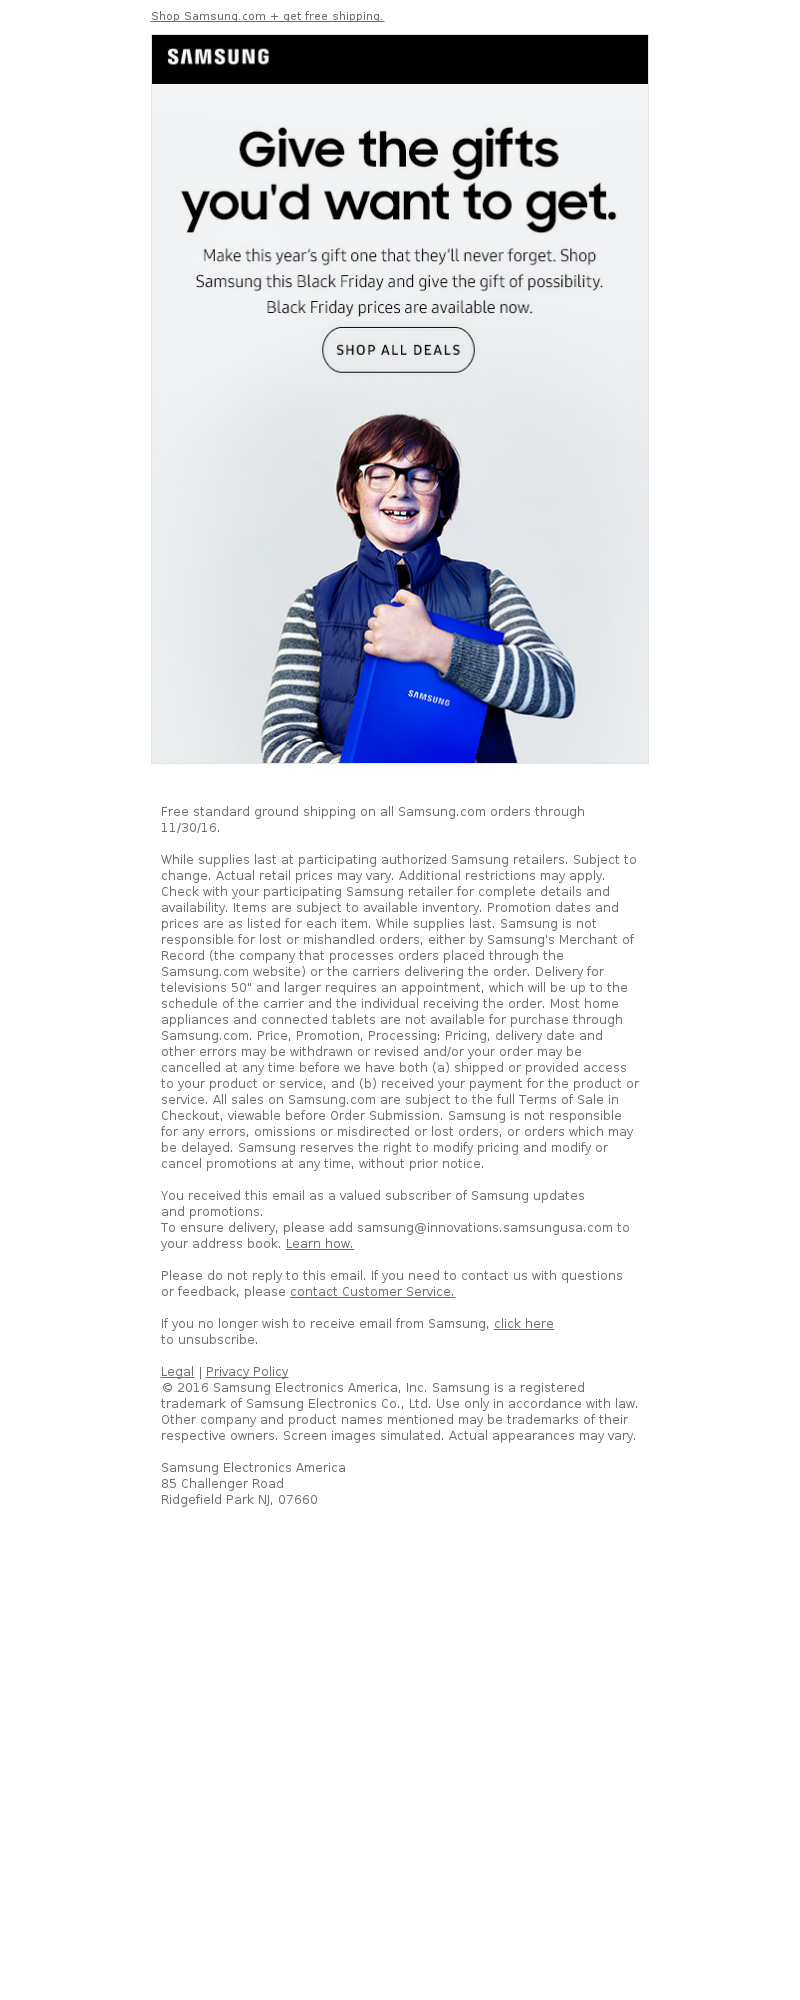 Samsung Email Marketing Examples